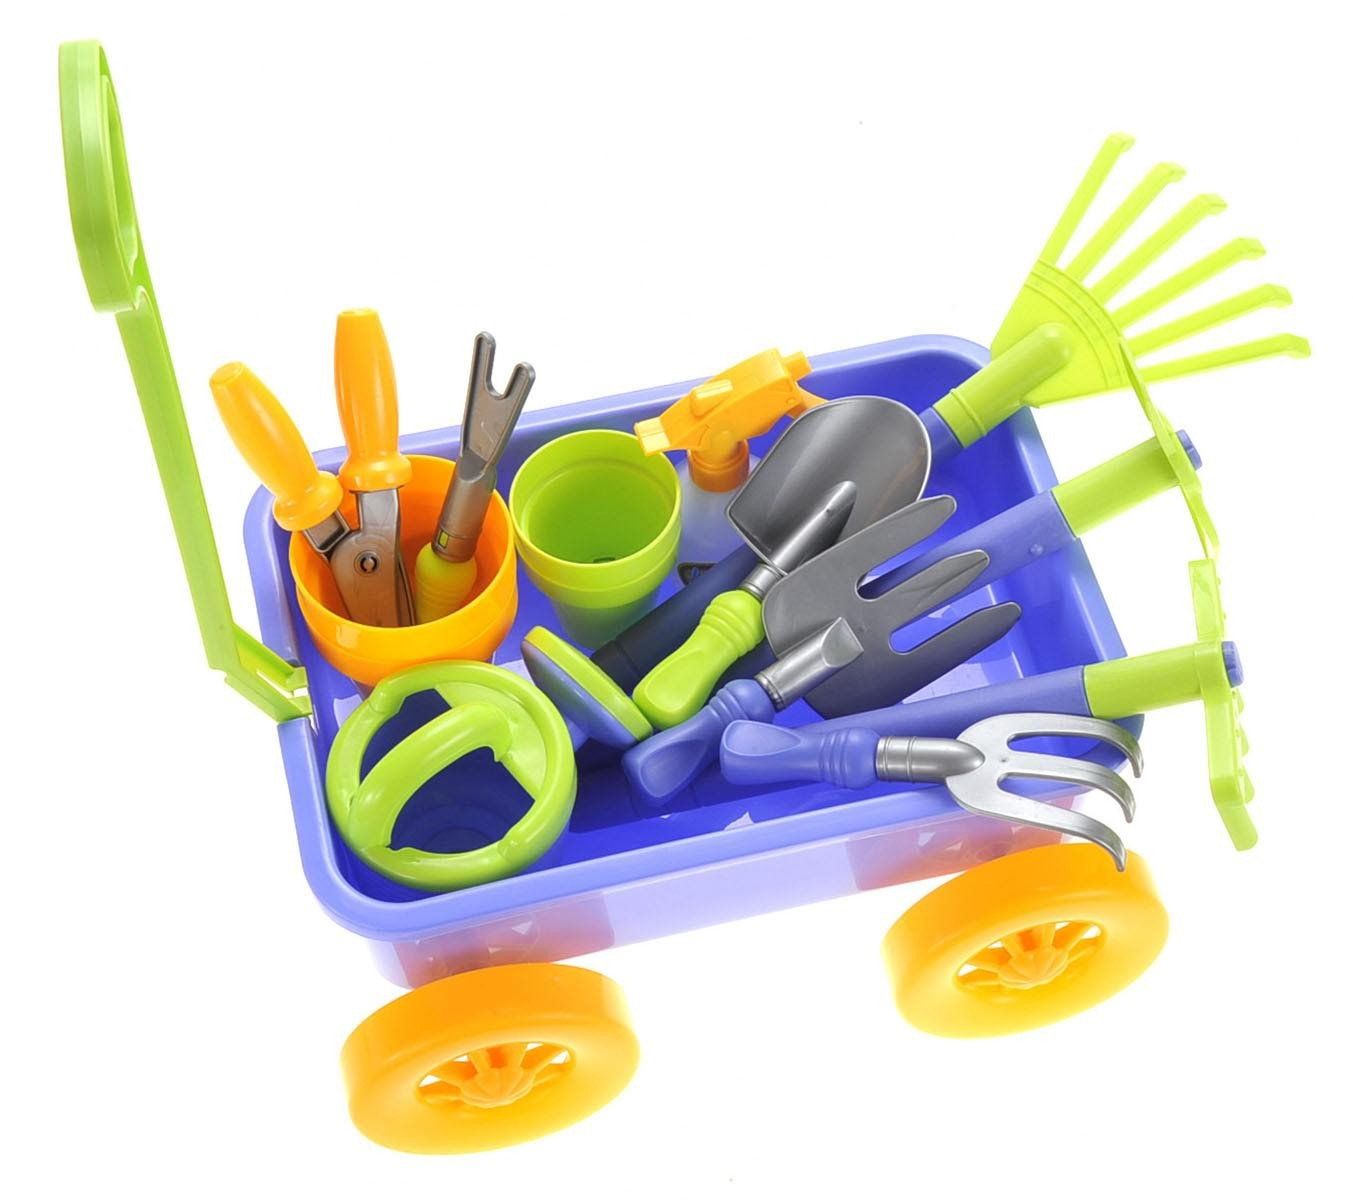 Garden Wagon Amp Tools Toy Set Tool Sets Toy Playsets